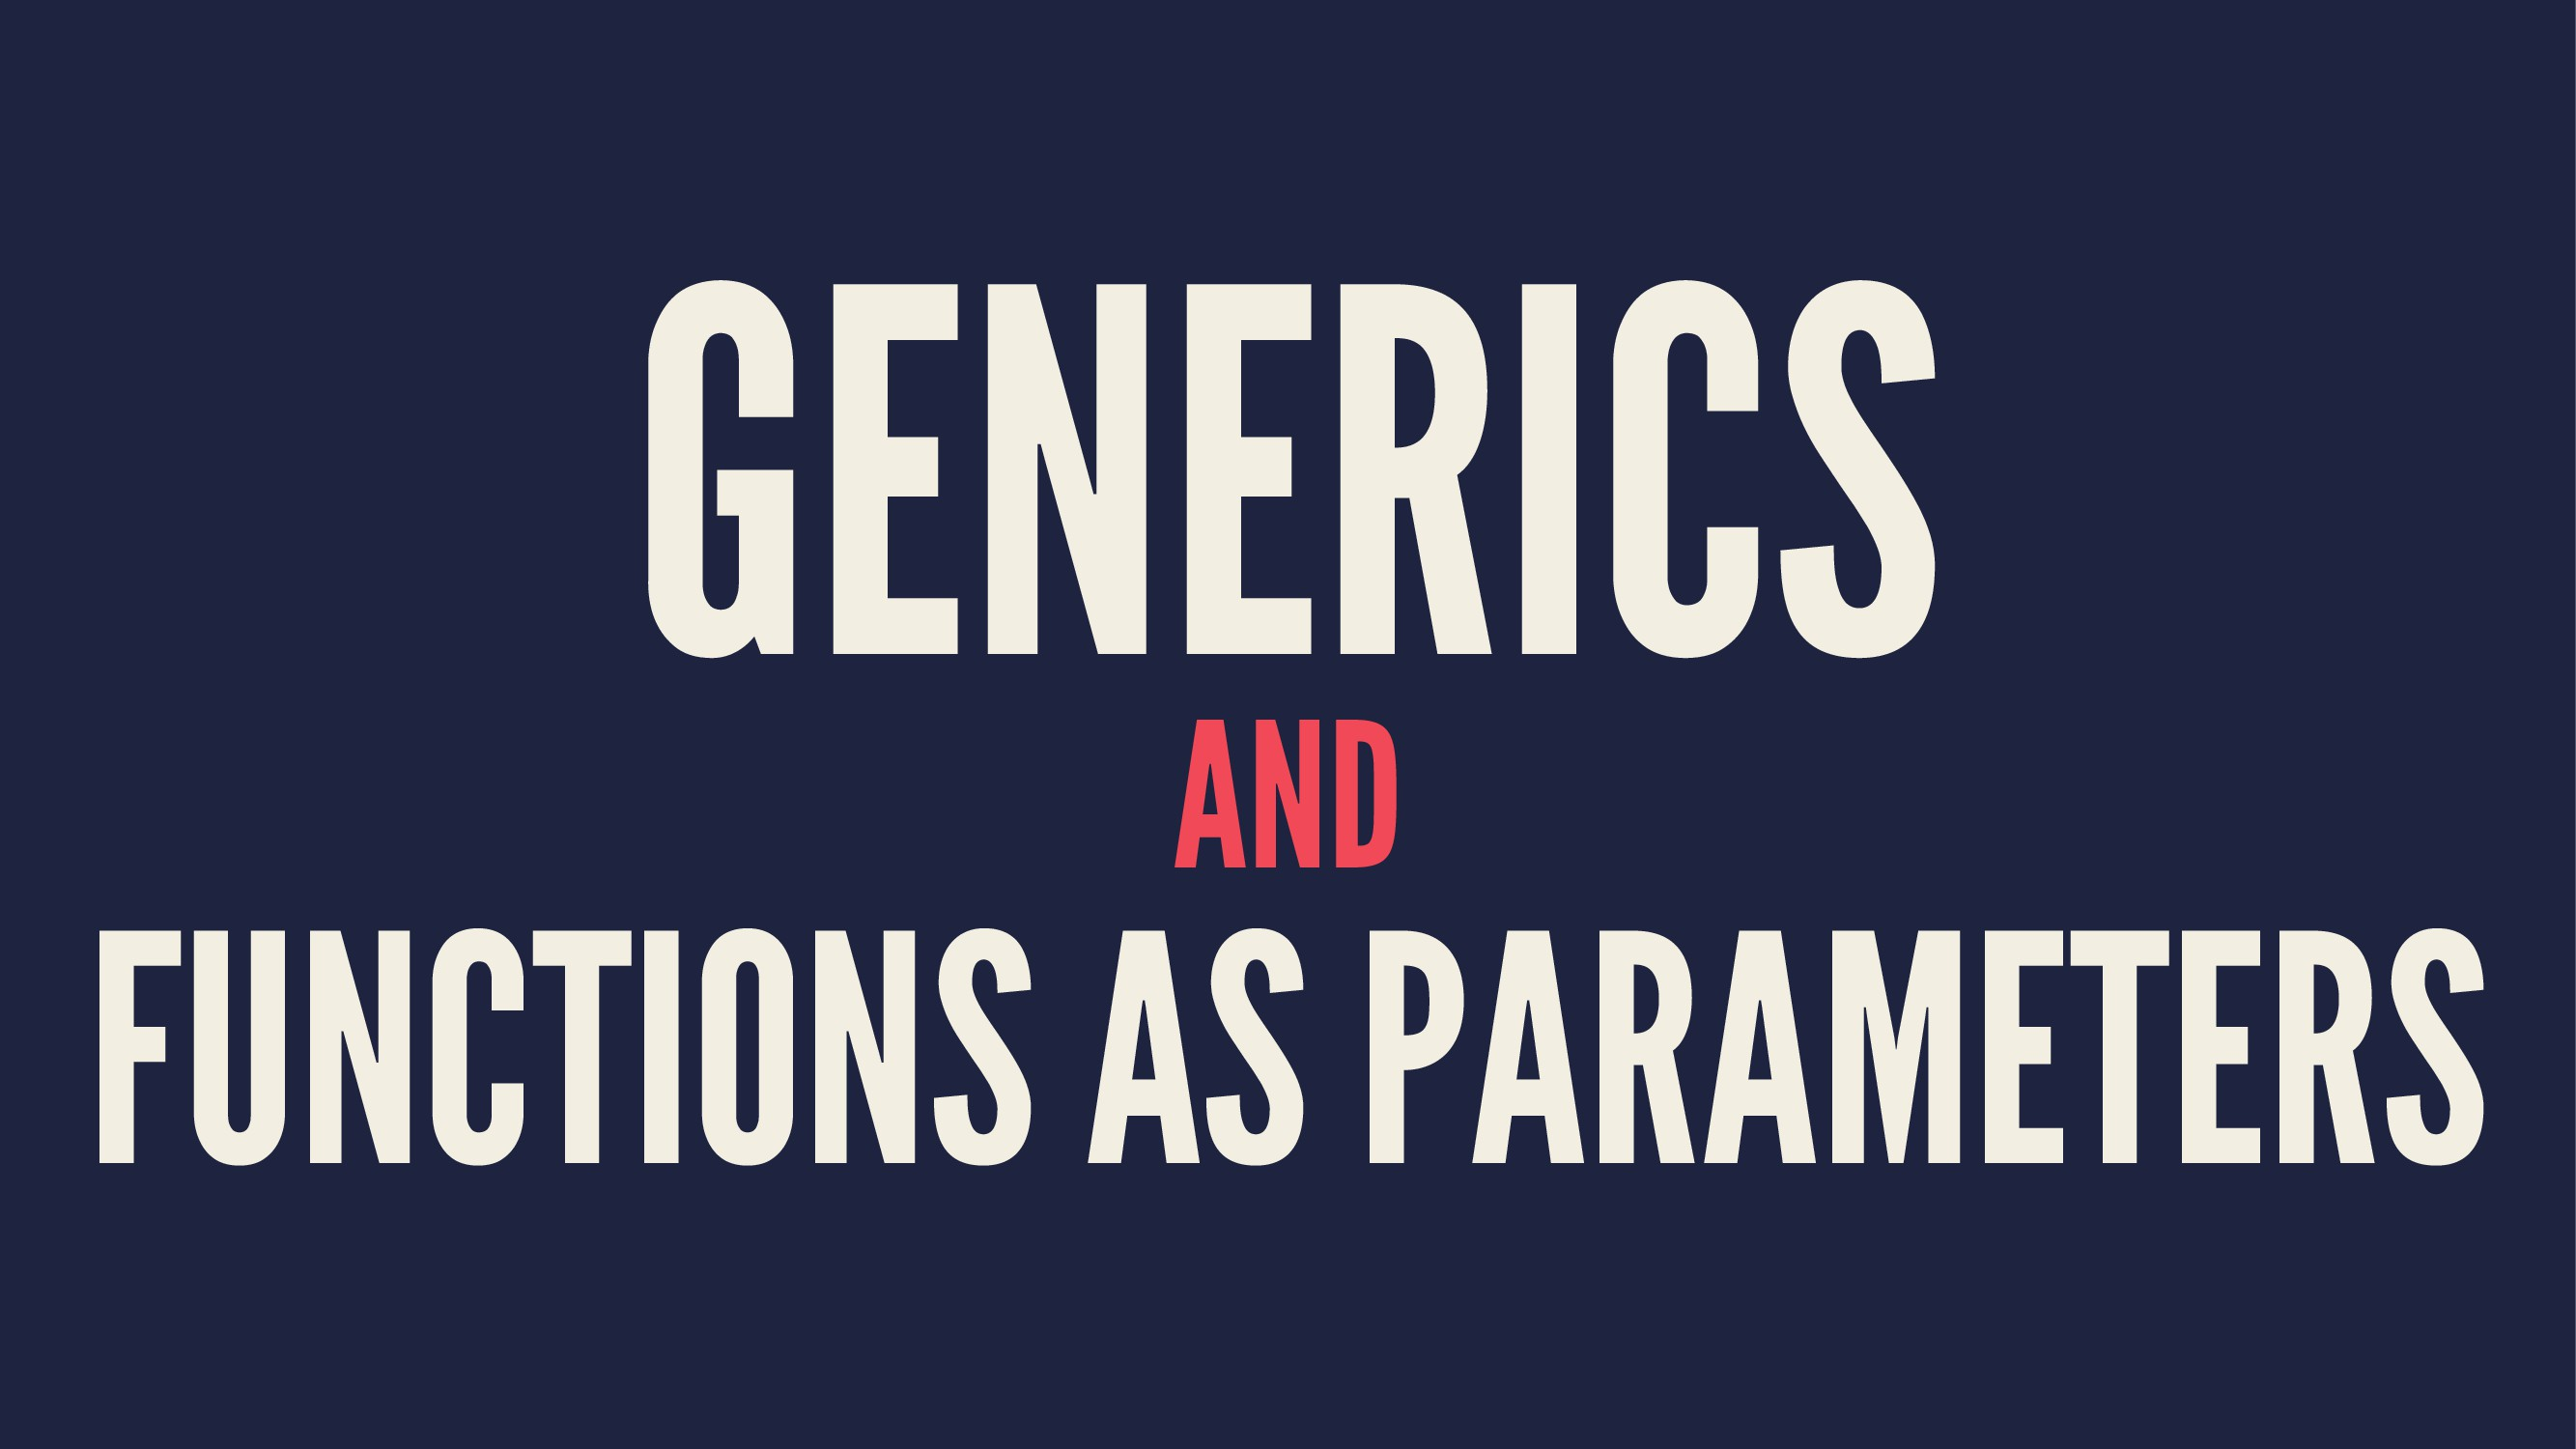 GENERICS AND FUNCTIONS AS PARAMETERS